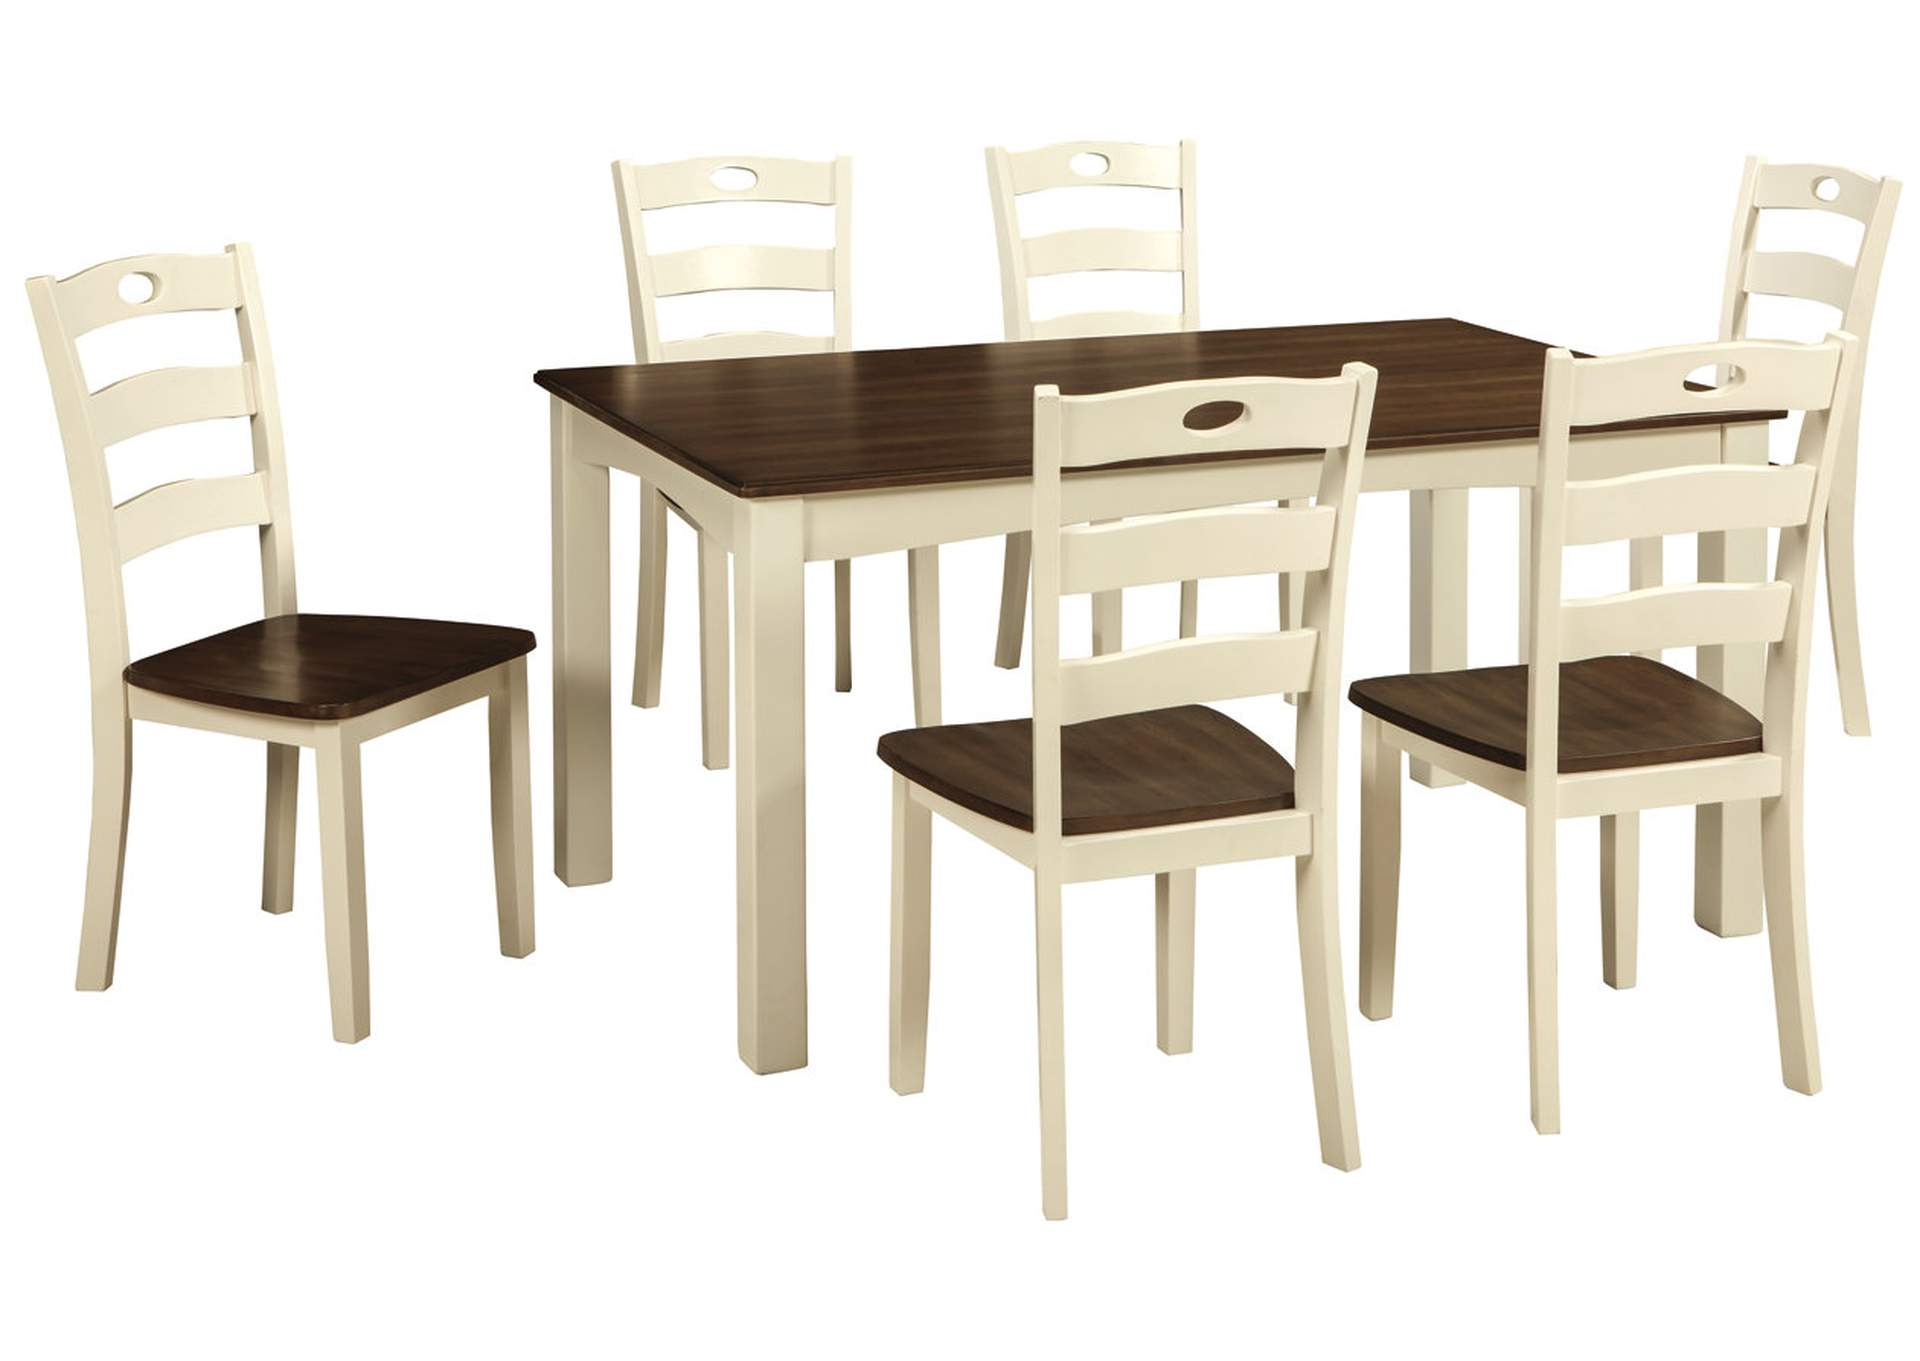 Woodanville White/Brown Dining Room Table Set,Signature Design By Ashley